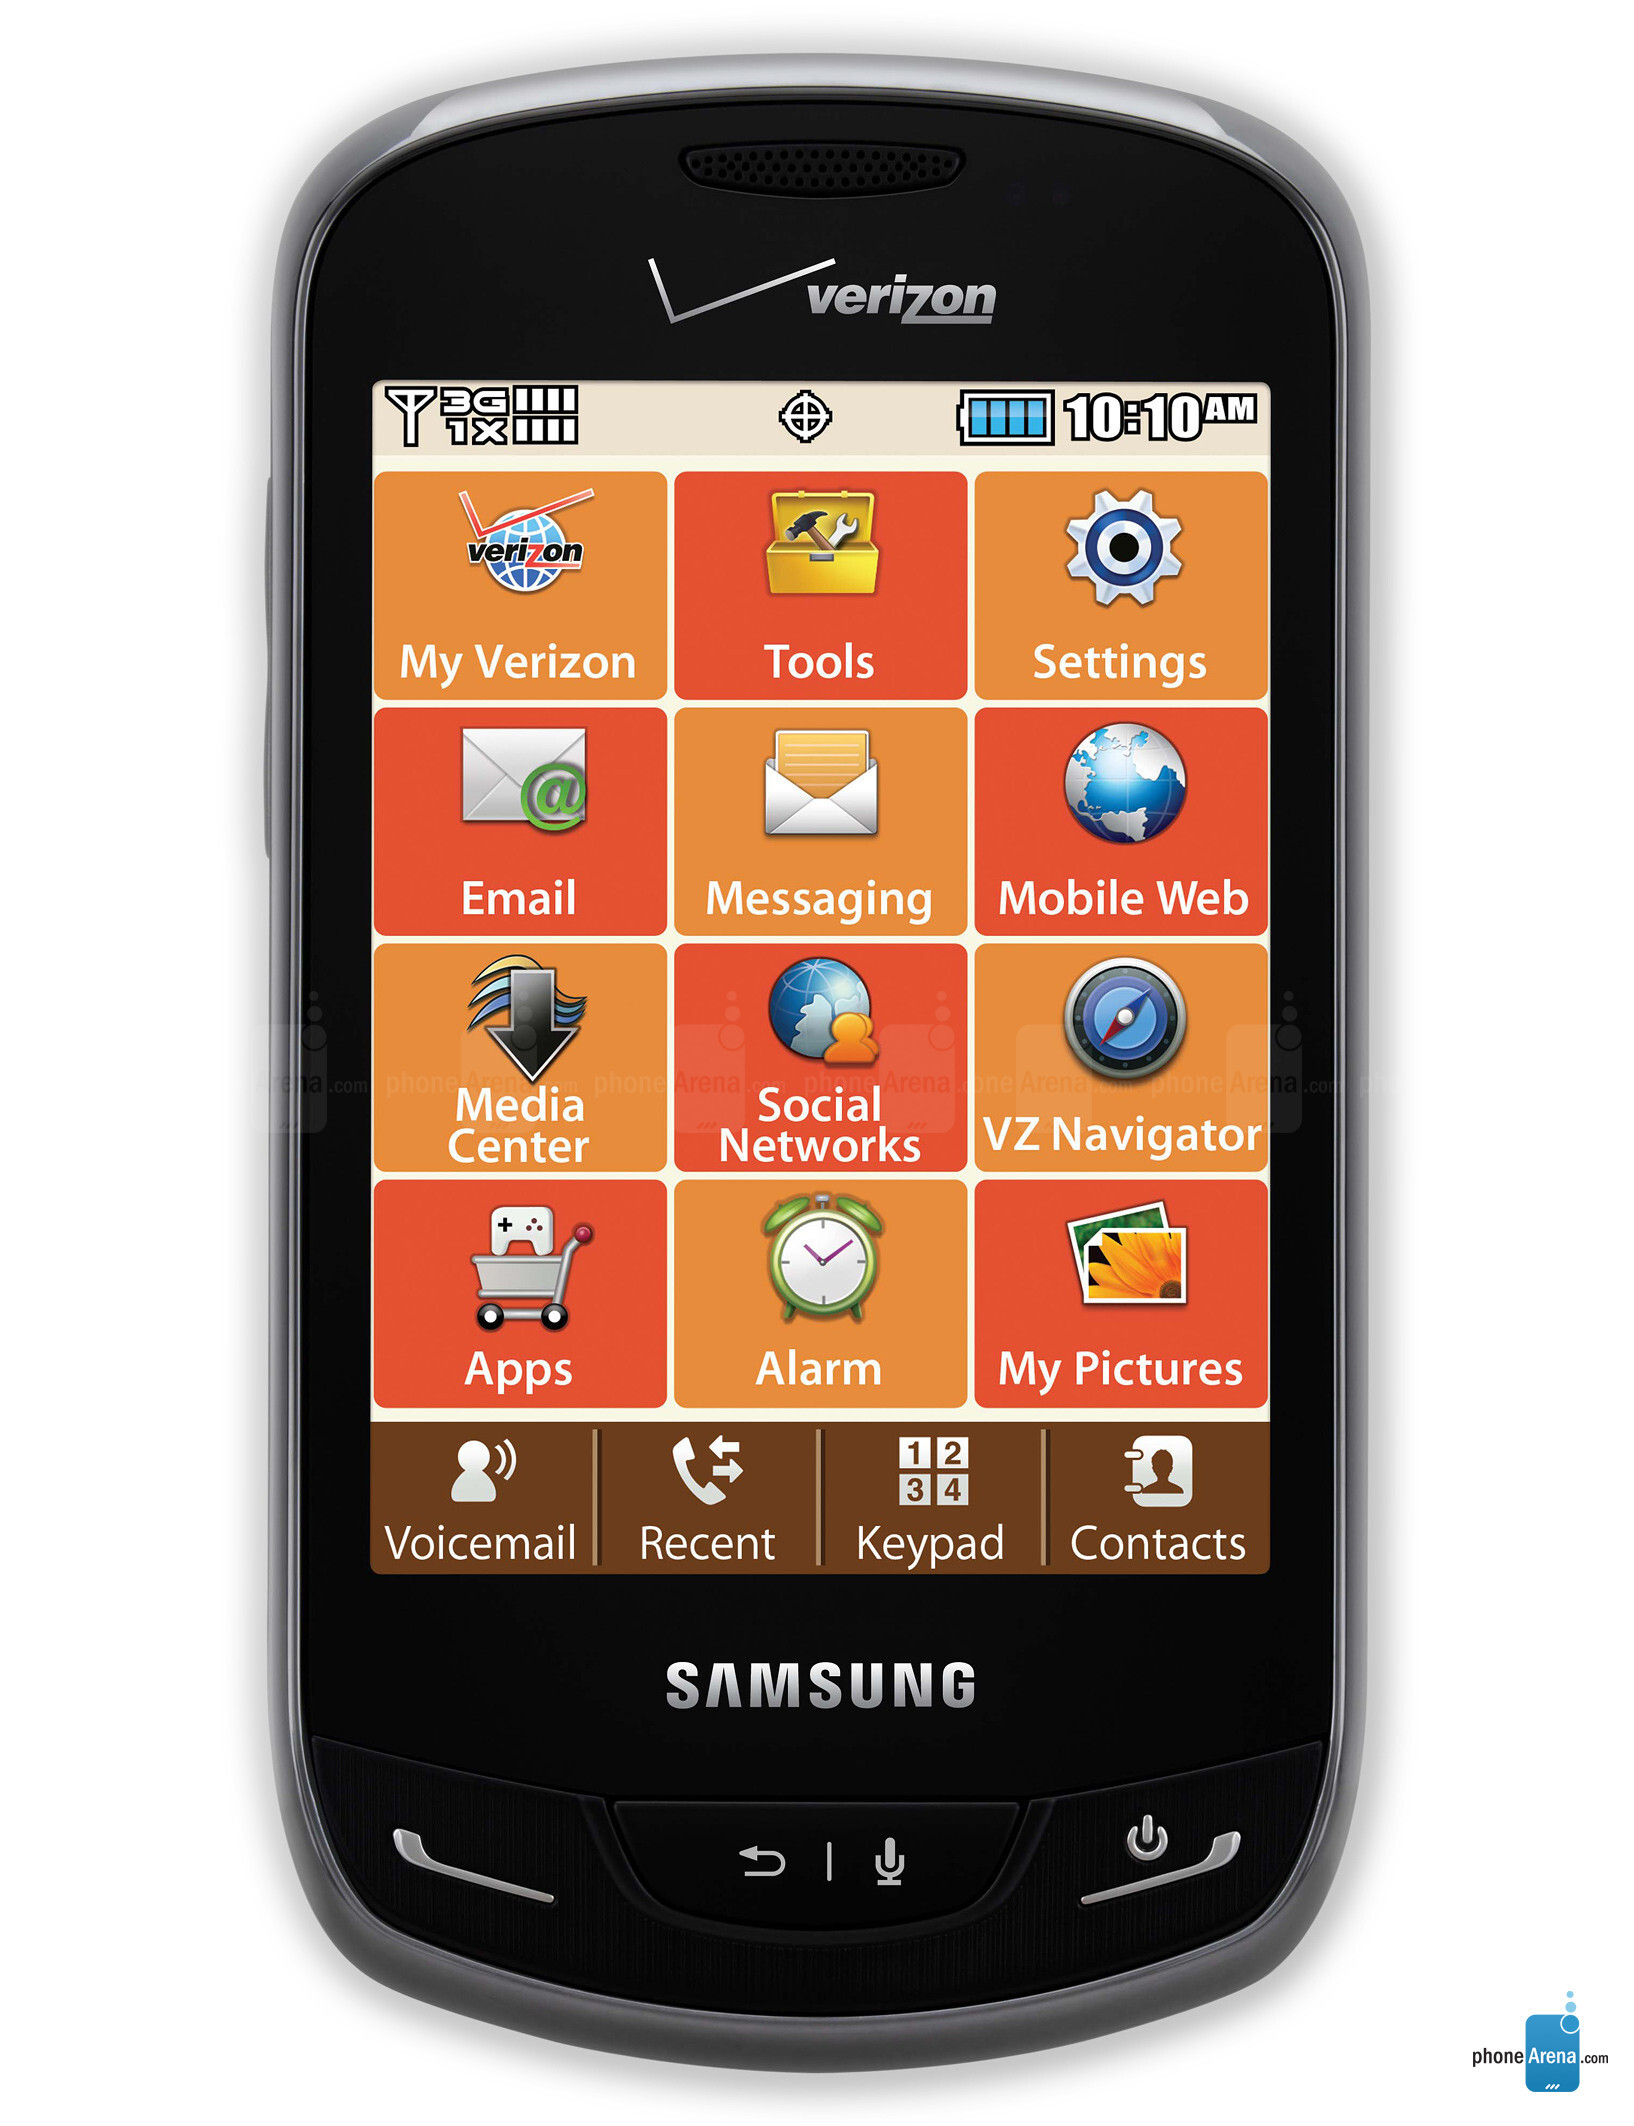 Samsung version phones | B&H Photo VideoFree Express Ship Avail.· Daily Deal, Sale Prices· 6 Month $0 Pay w/ PayPal.